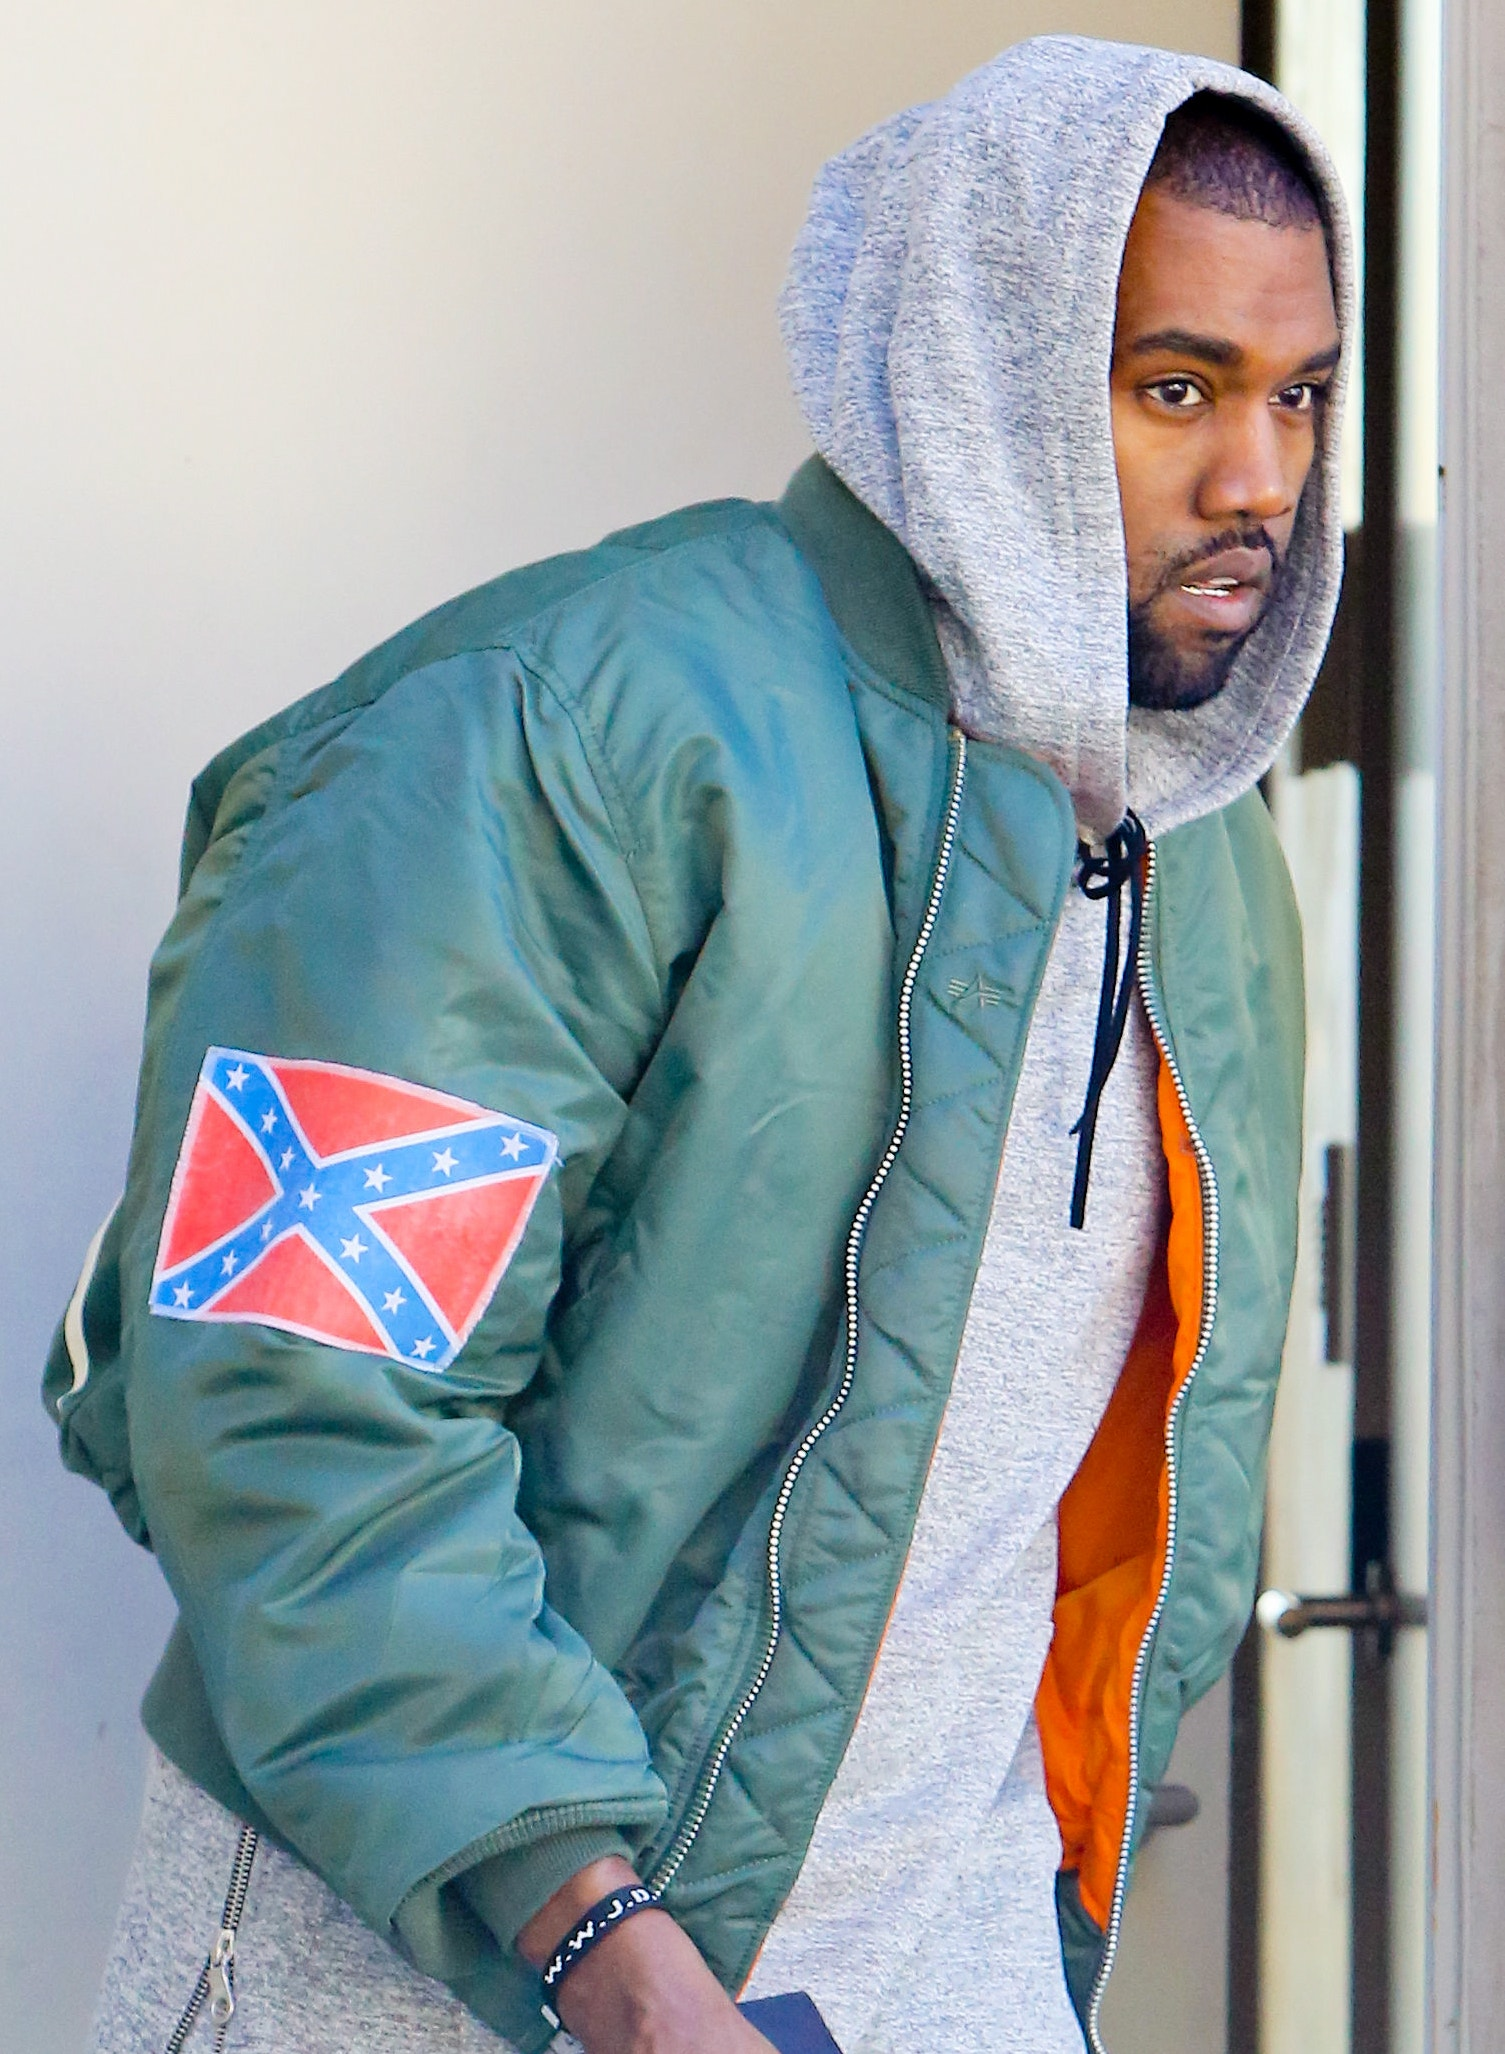 96a4c099c8f0 Kanye West once wore the Confederate flag. What does he think about ...